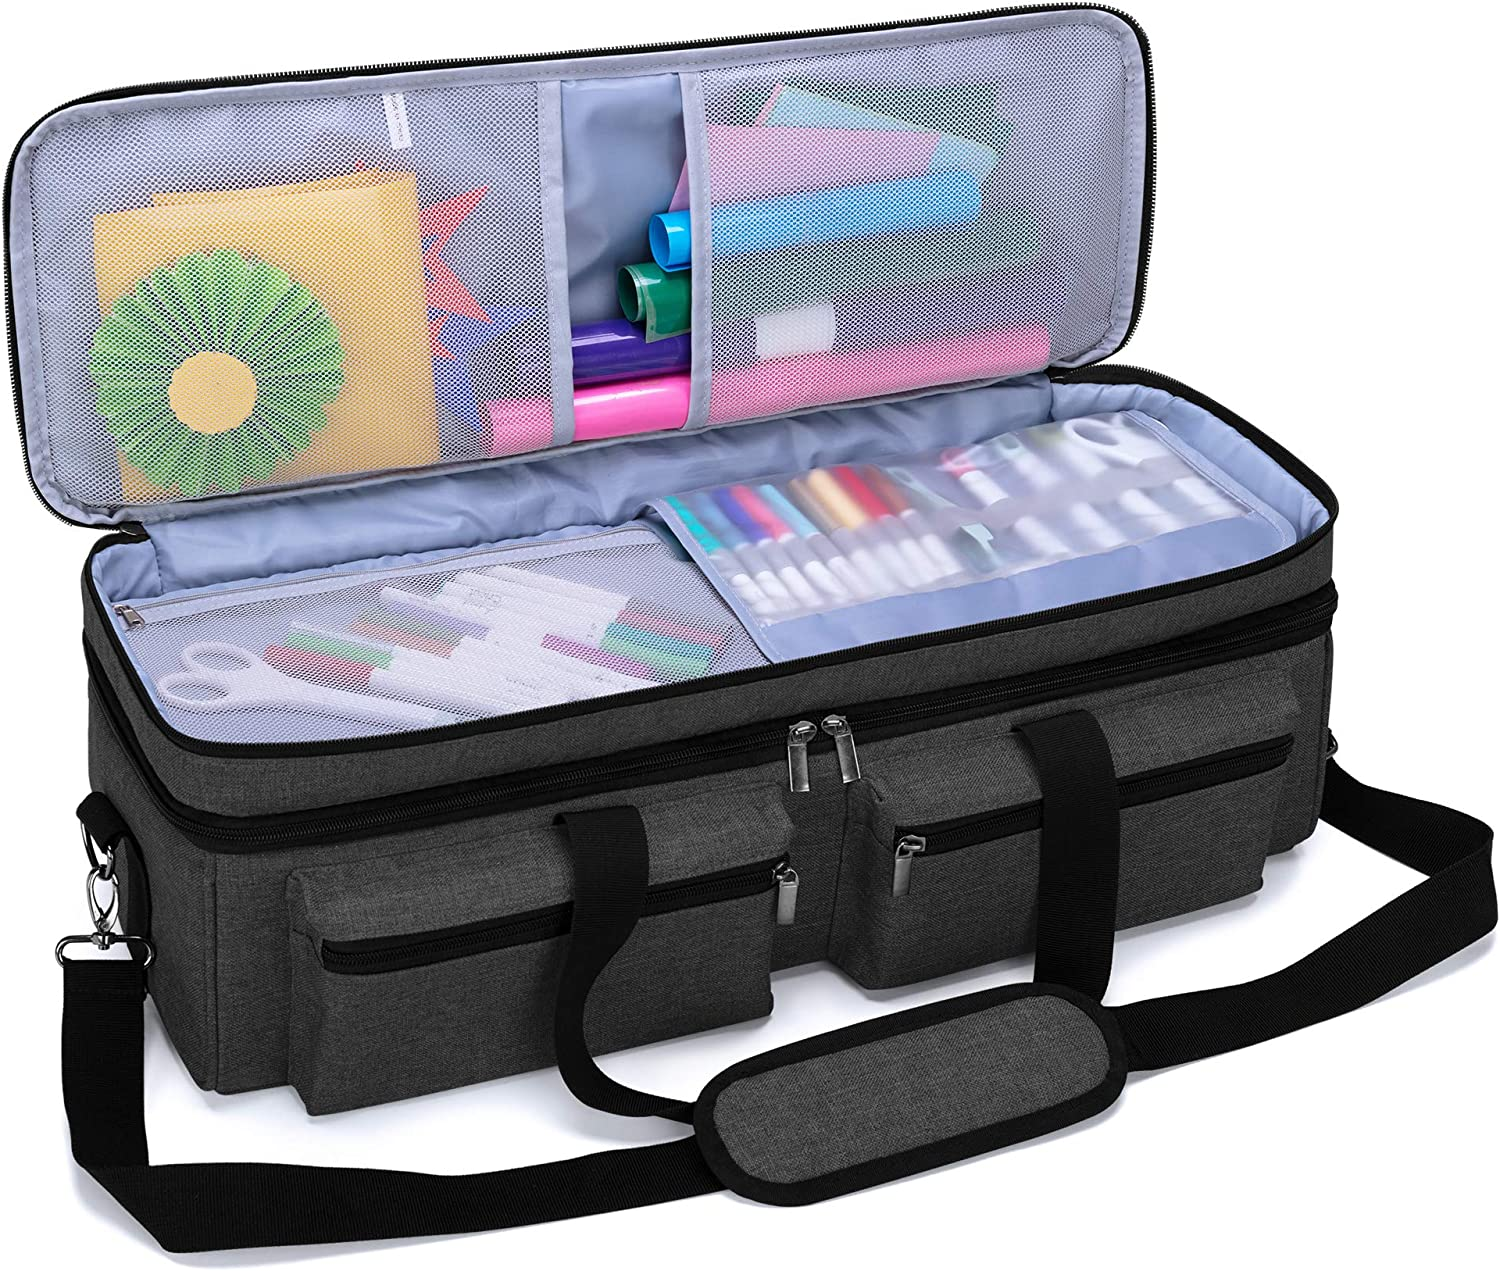 Black Luxja Tote Compatible with Cricut Accessories Bag Only, Patent Pending Carrying Bag Compatible with Cricut Supplies